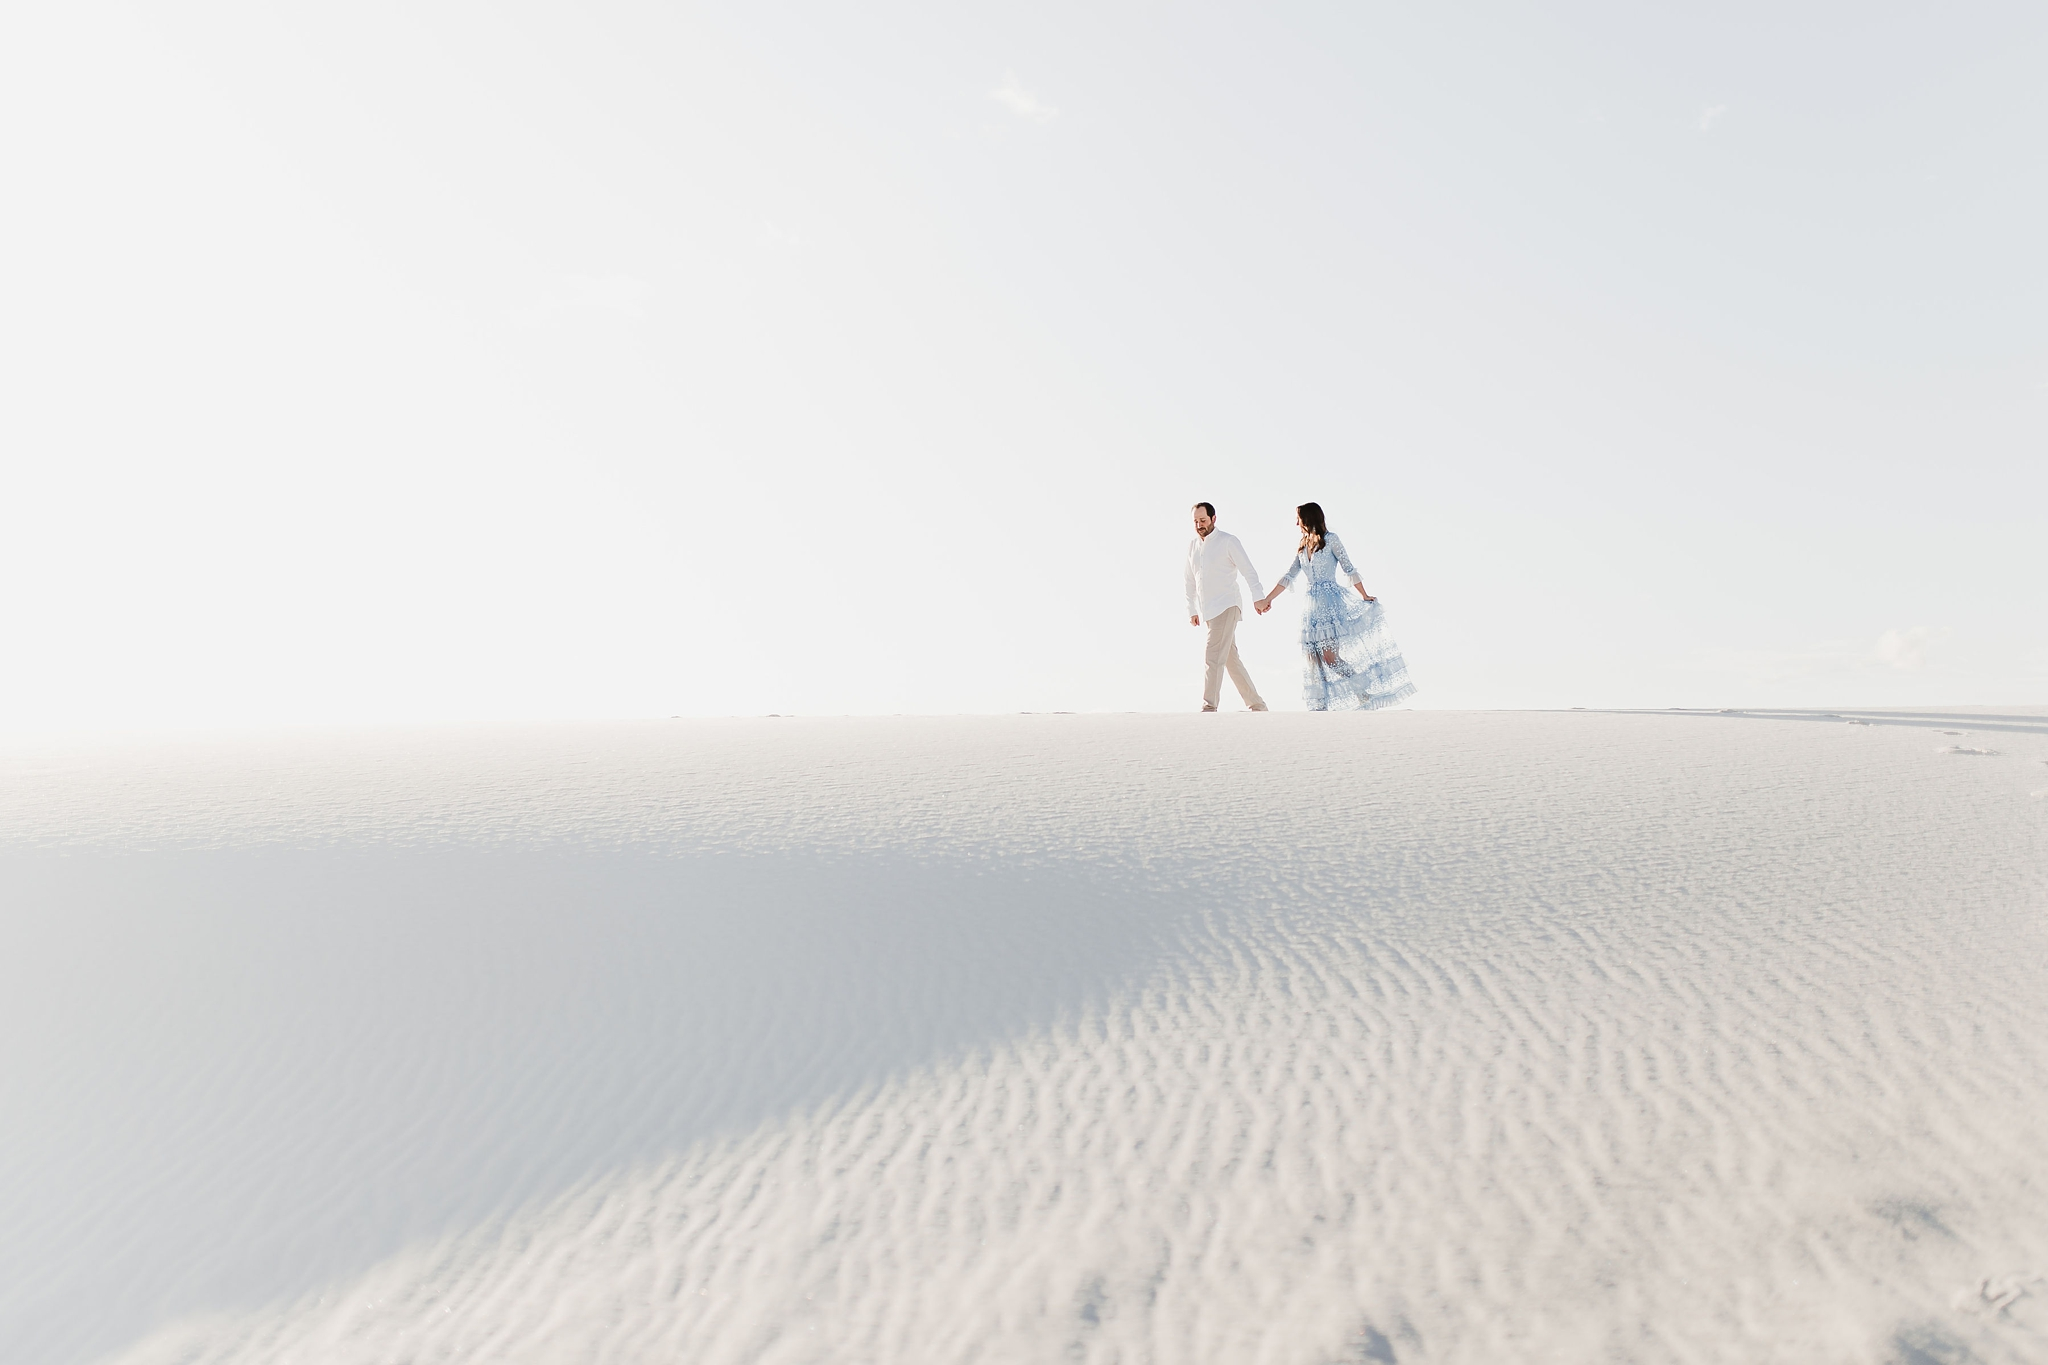 Alicia+lucia+photography+-+albuquerque+wedding+photographer+-+santa+fe+wedding+photography+-+new+mexico+wedding+photographer+-+new+mexico+wedding+-+new+mexico+engagement+-+white+sands+engagement+-+white+sands+national+monument_0018.jpg